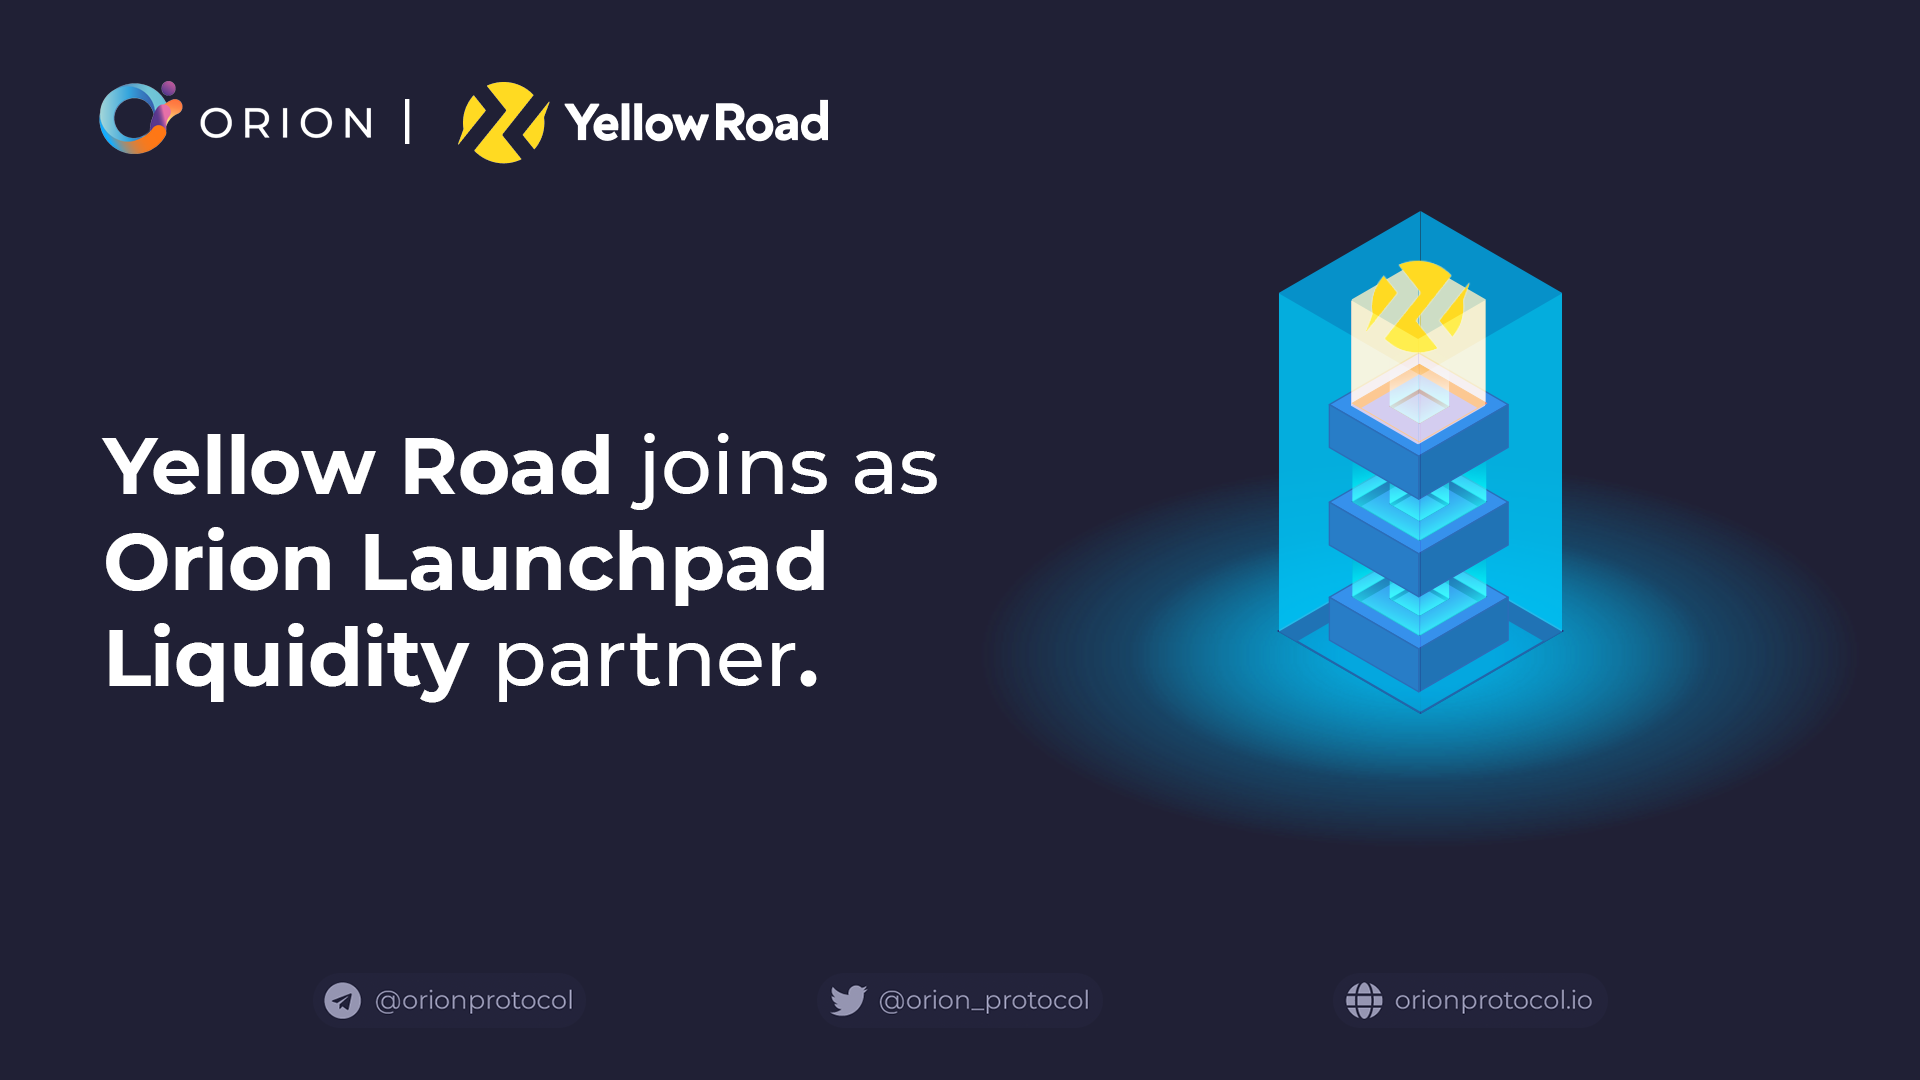 YellowRoad joins as Launchpad Liquidity partner